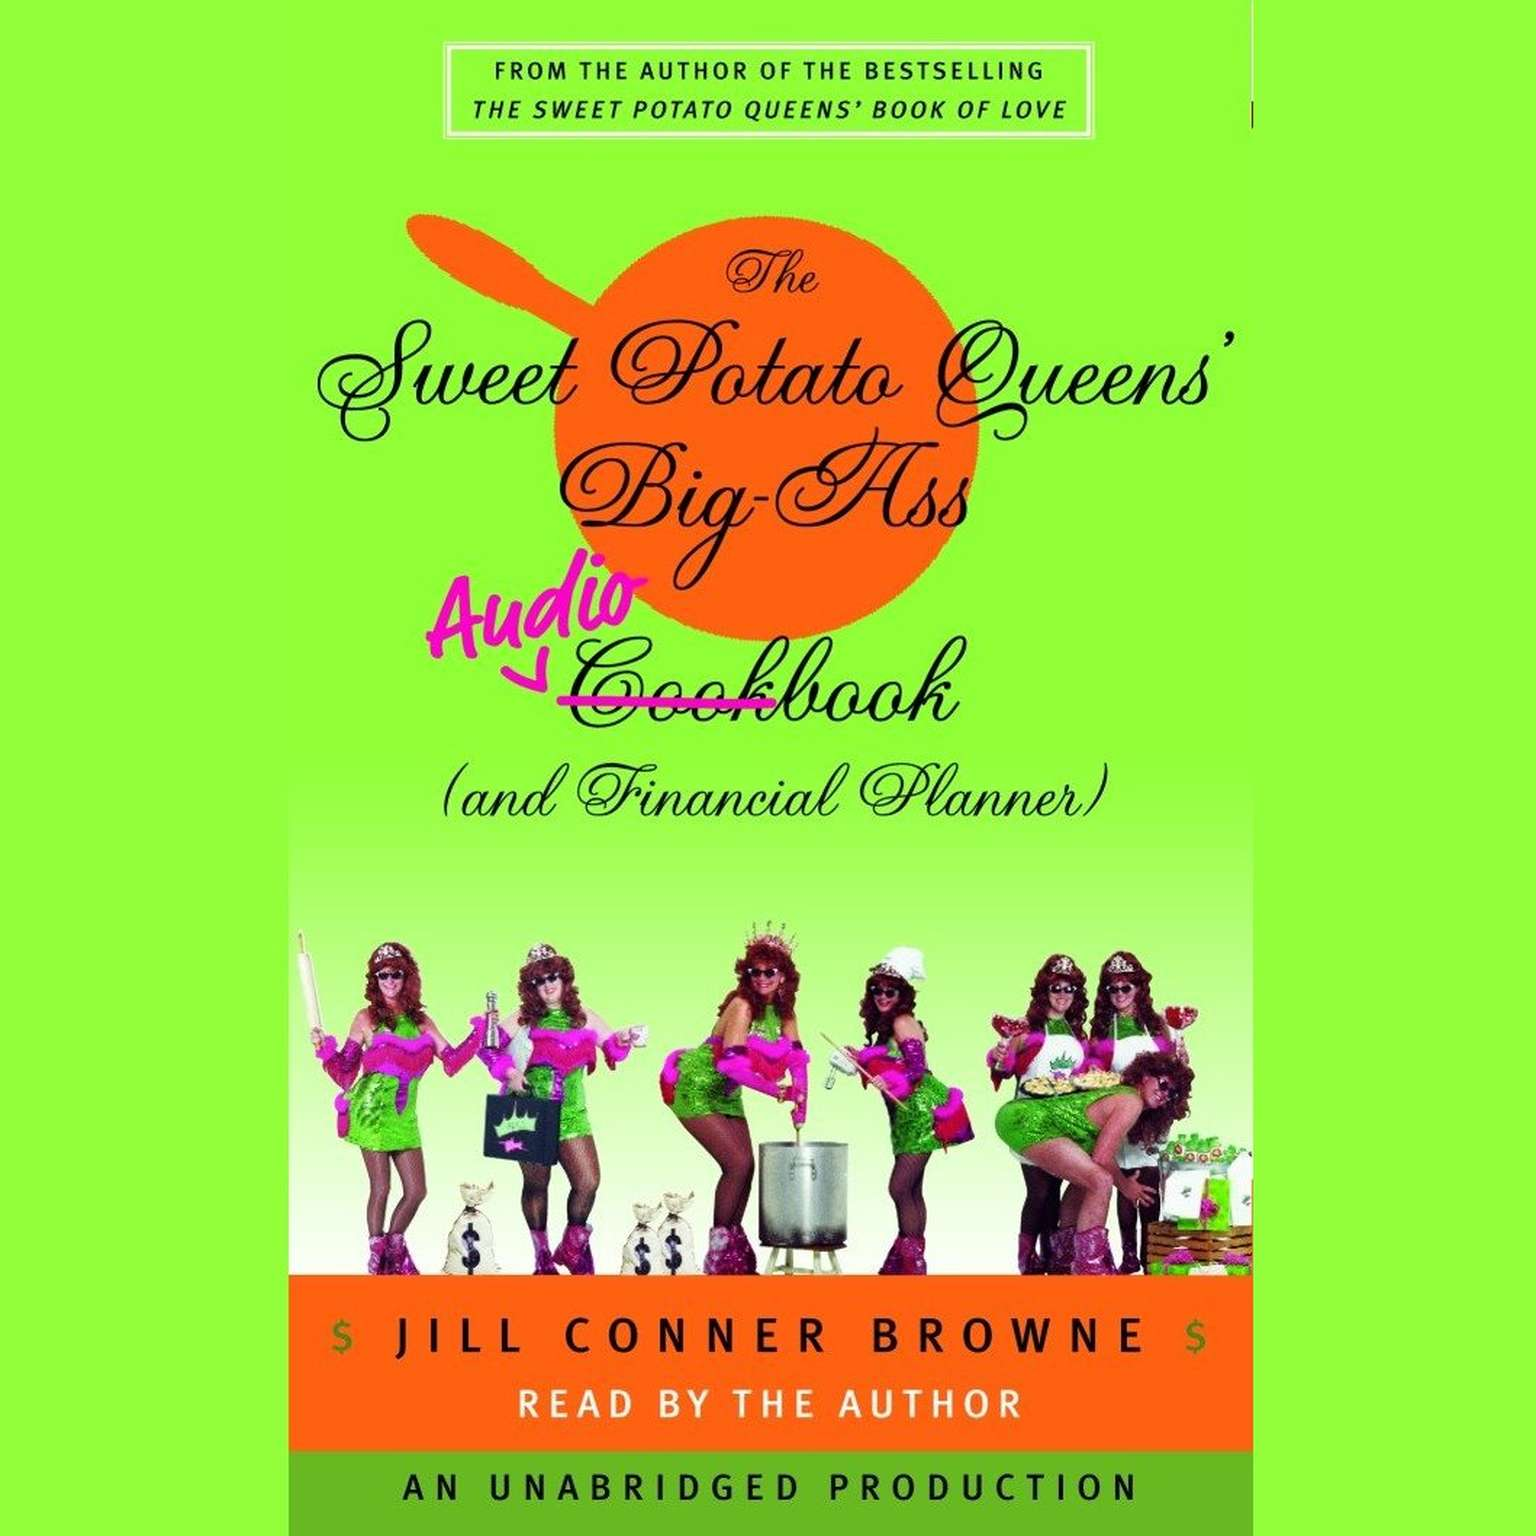 Printable The Sweet Potato Queens' Big-Ass Cookbook (and Financial Planner) Audiobook Cover Art